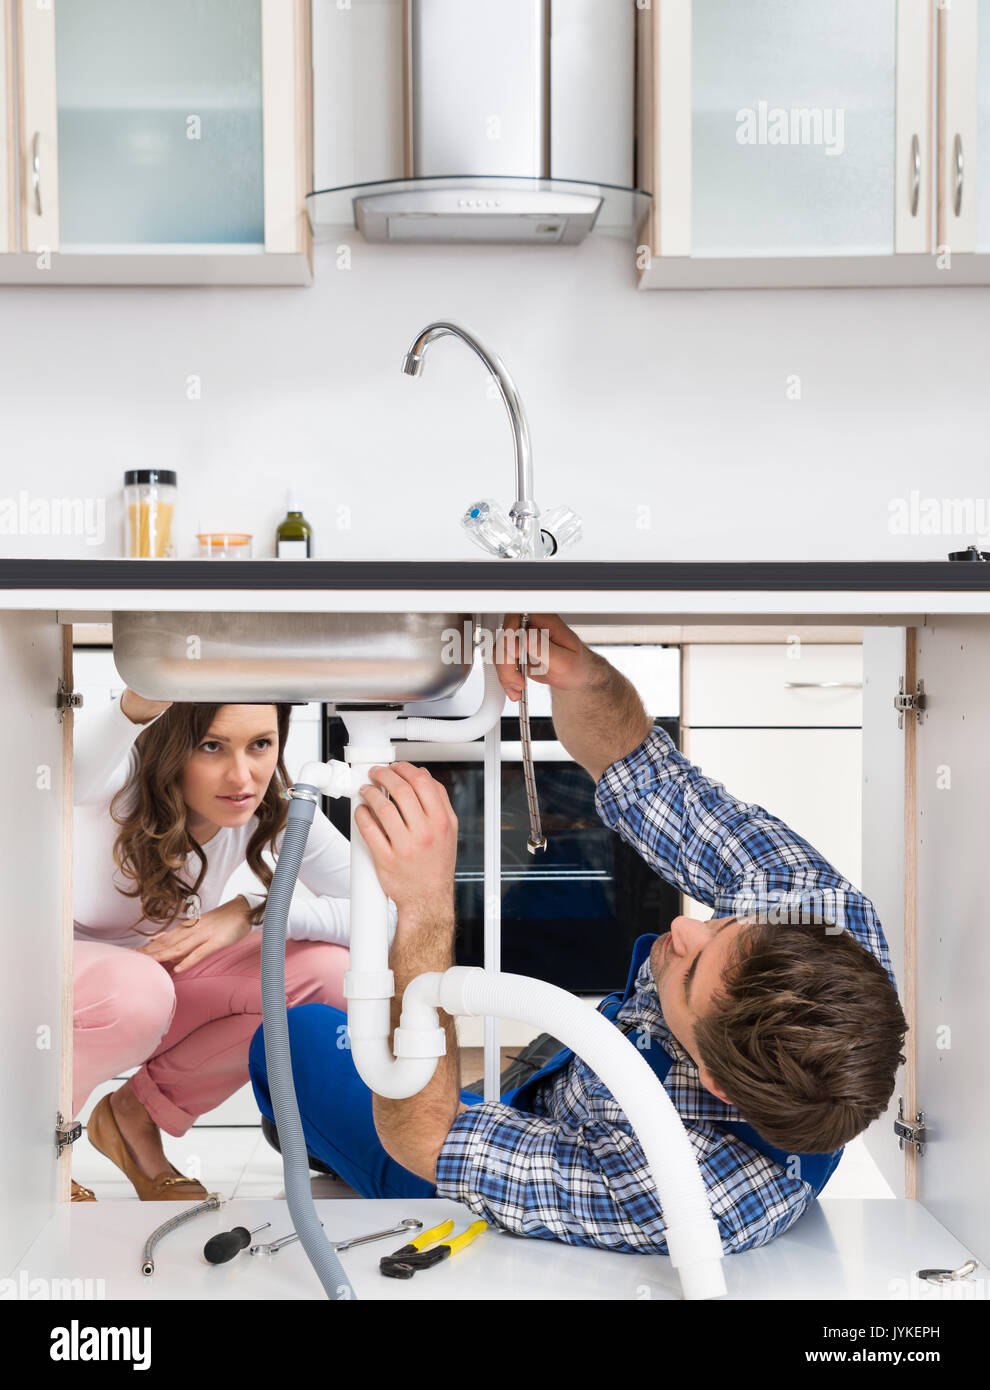 Young Worker Fixing Sink In Front Of Woman Crouching On Floor In ...